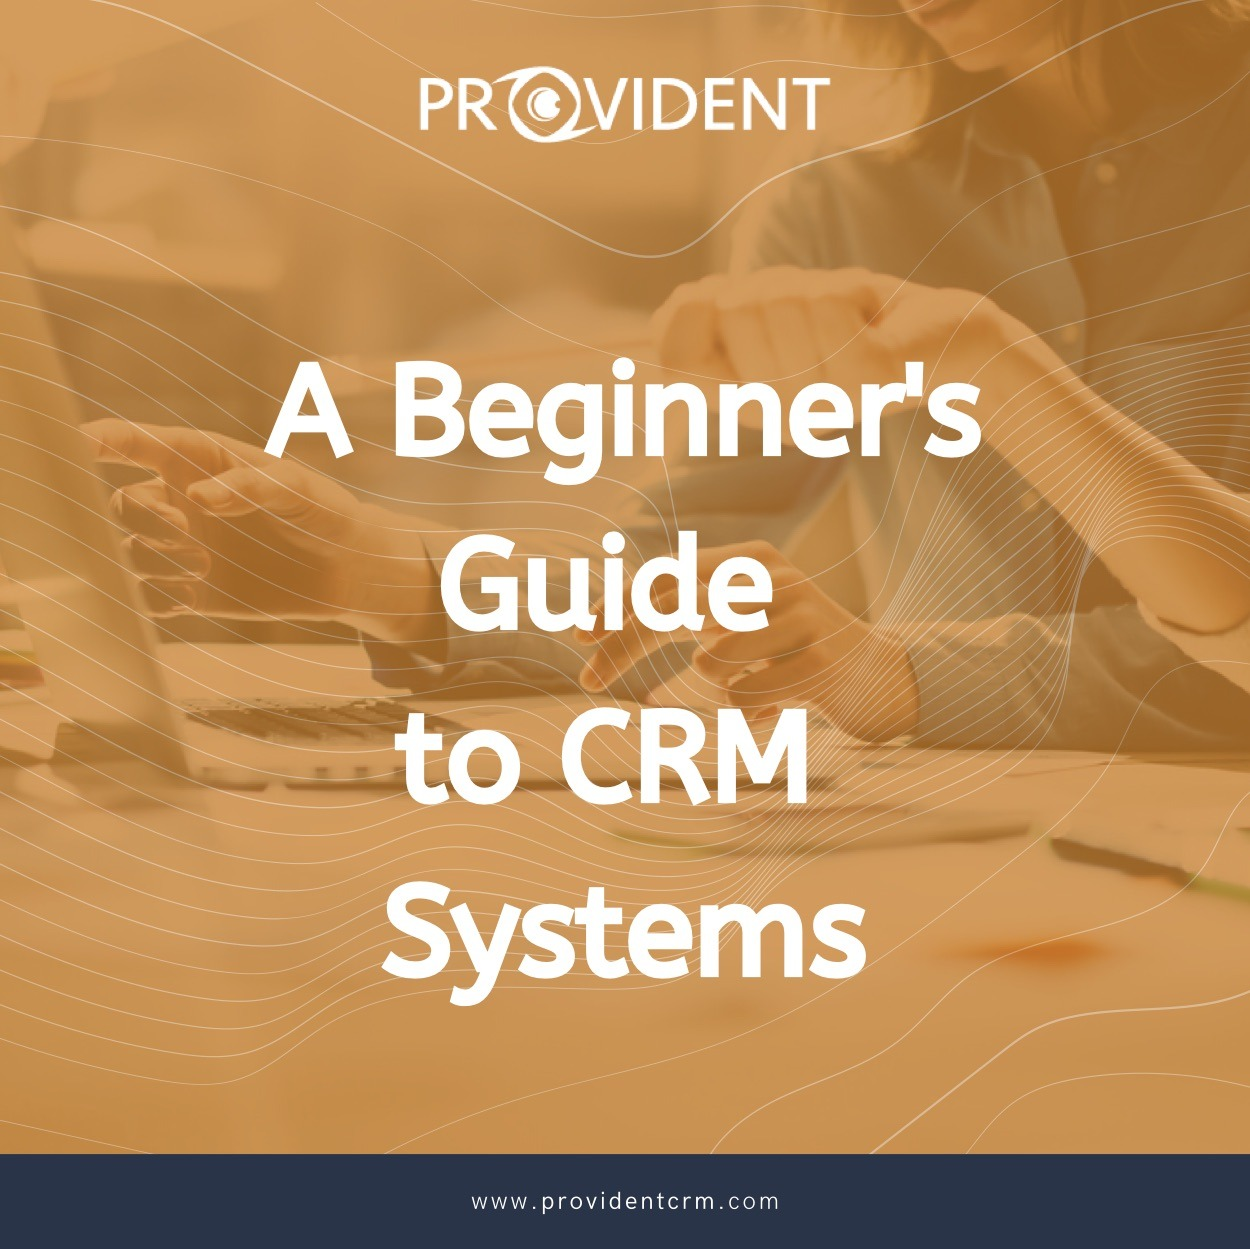 A Beginner's Guide to CRM Systems